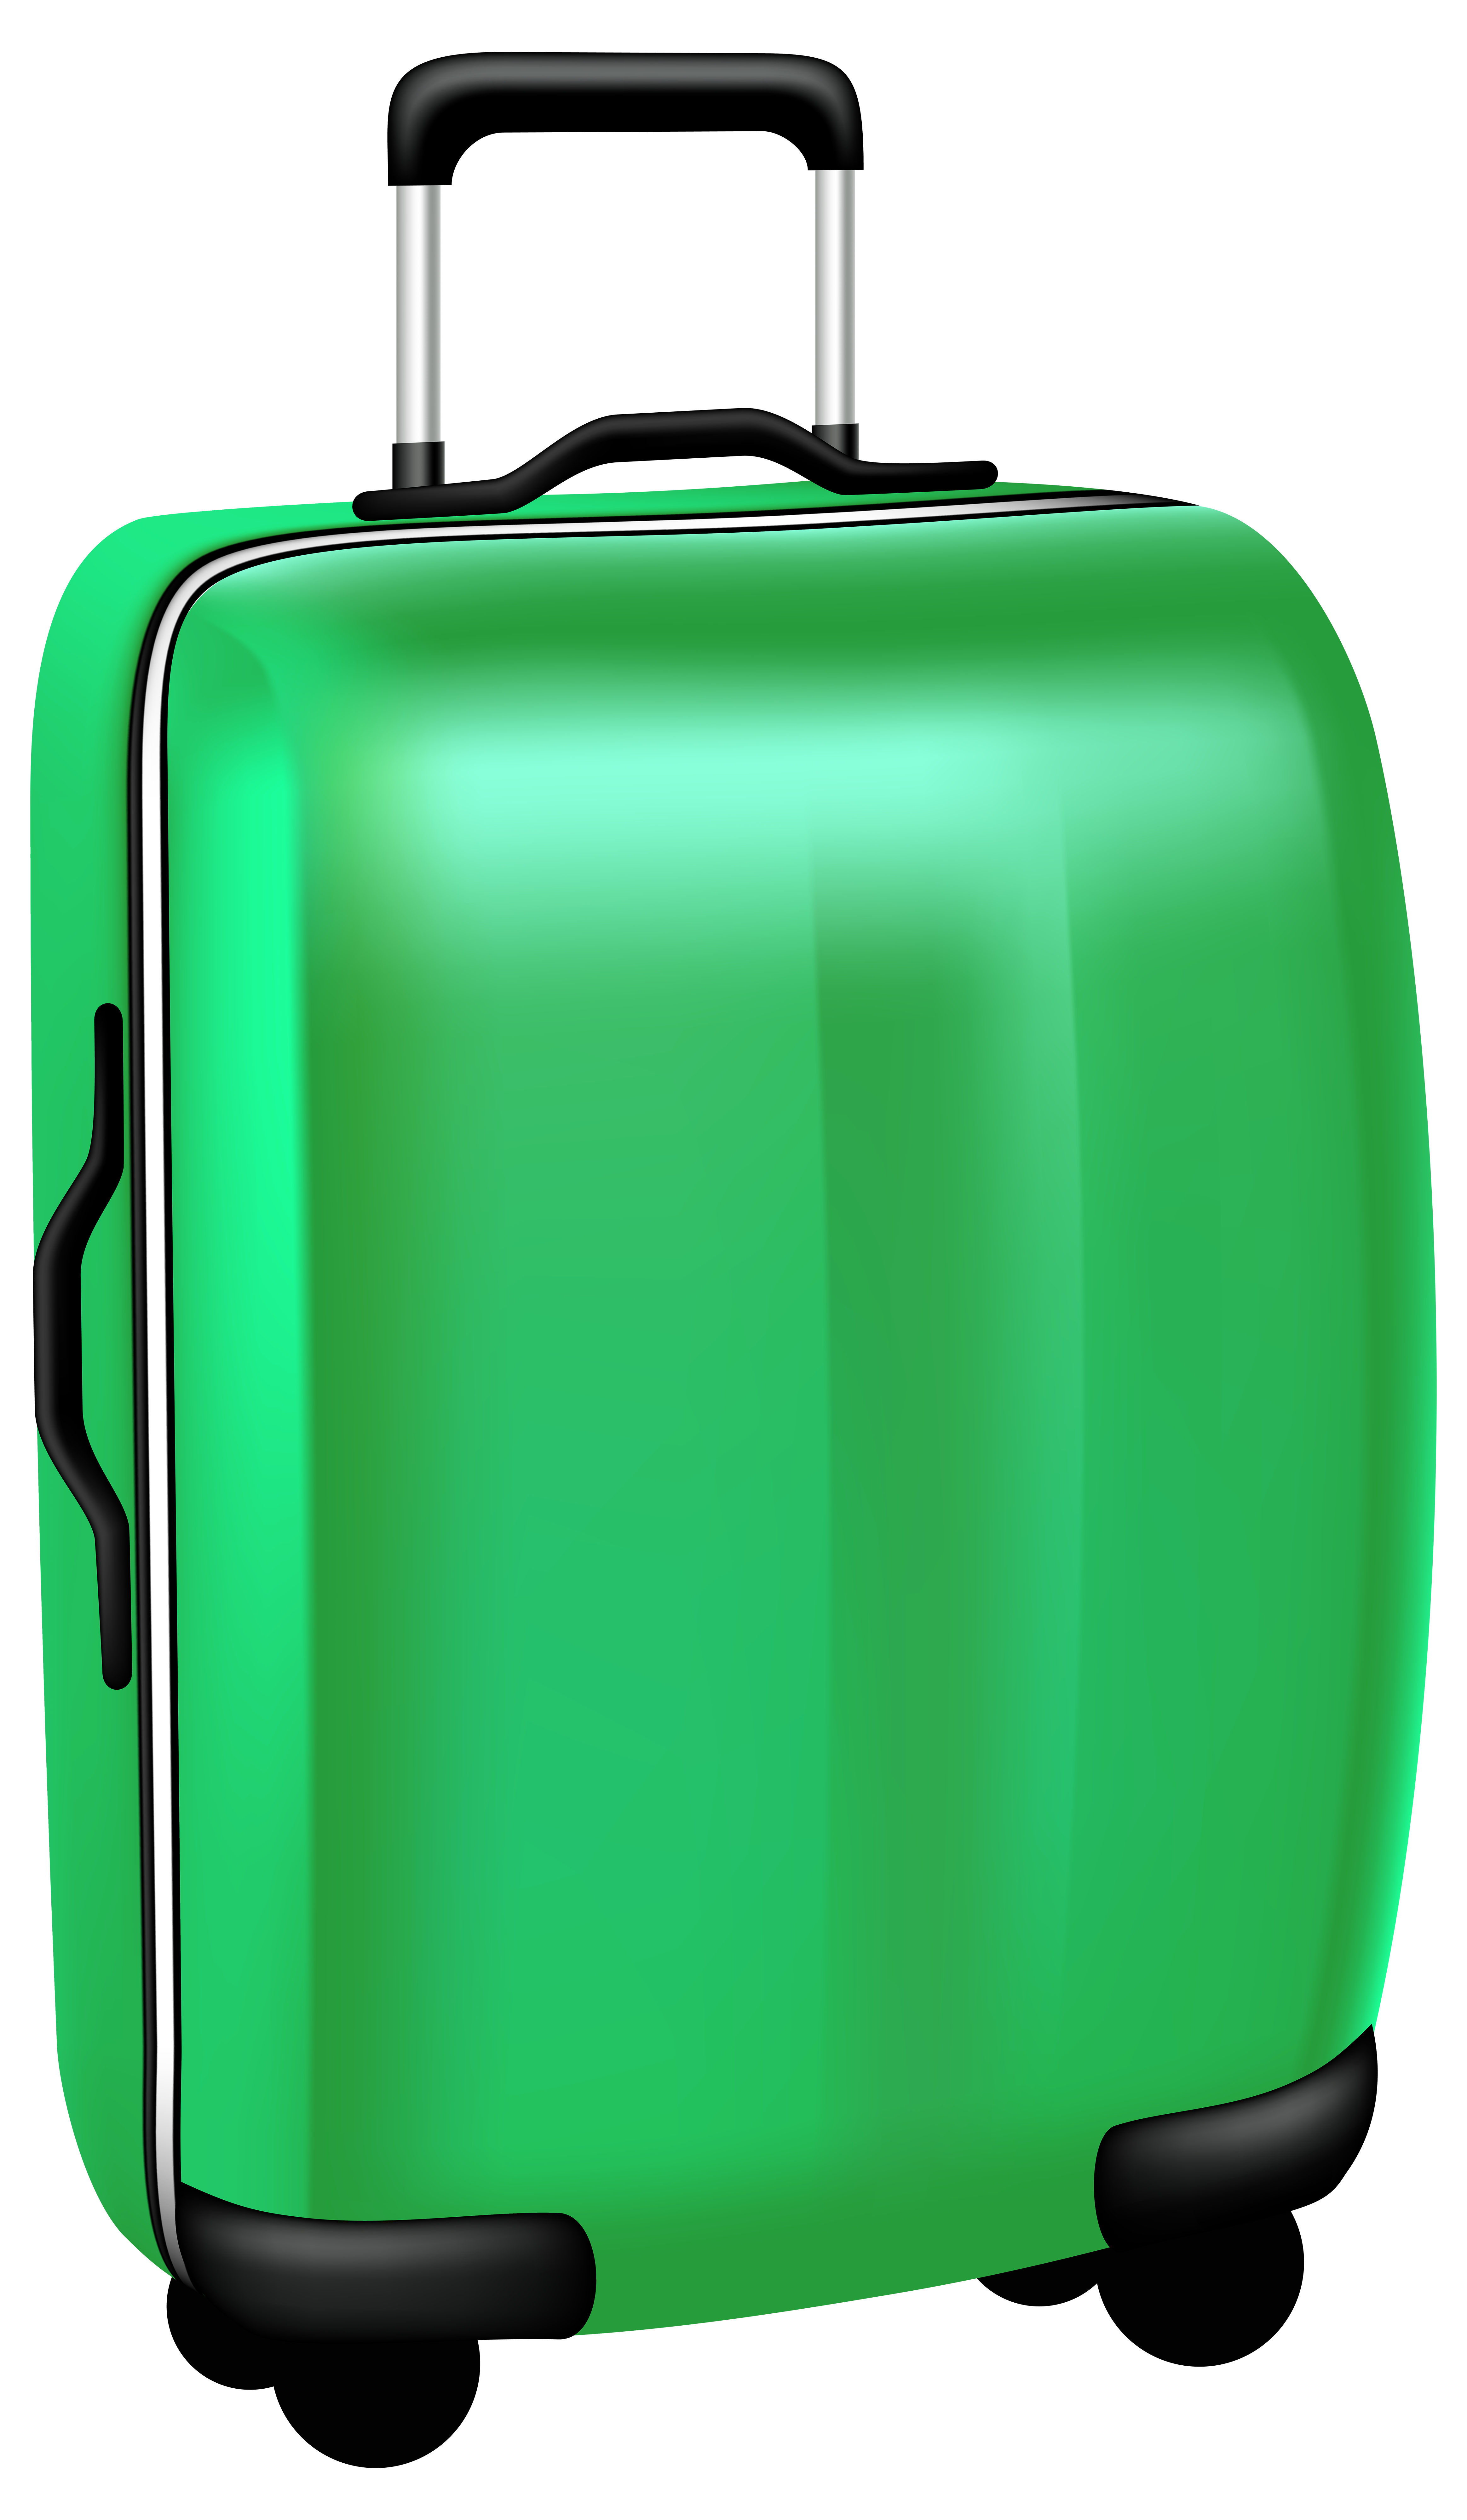 Trolley travel bag png. Luggage clipart green suitcase